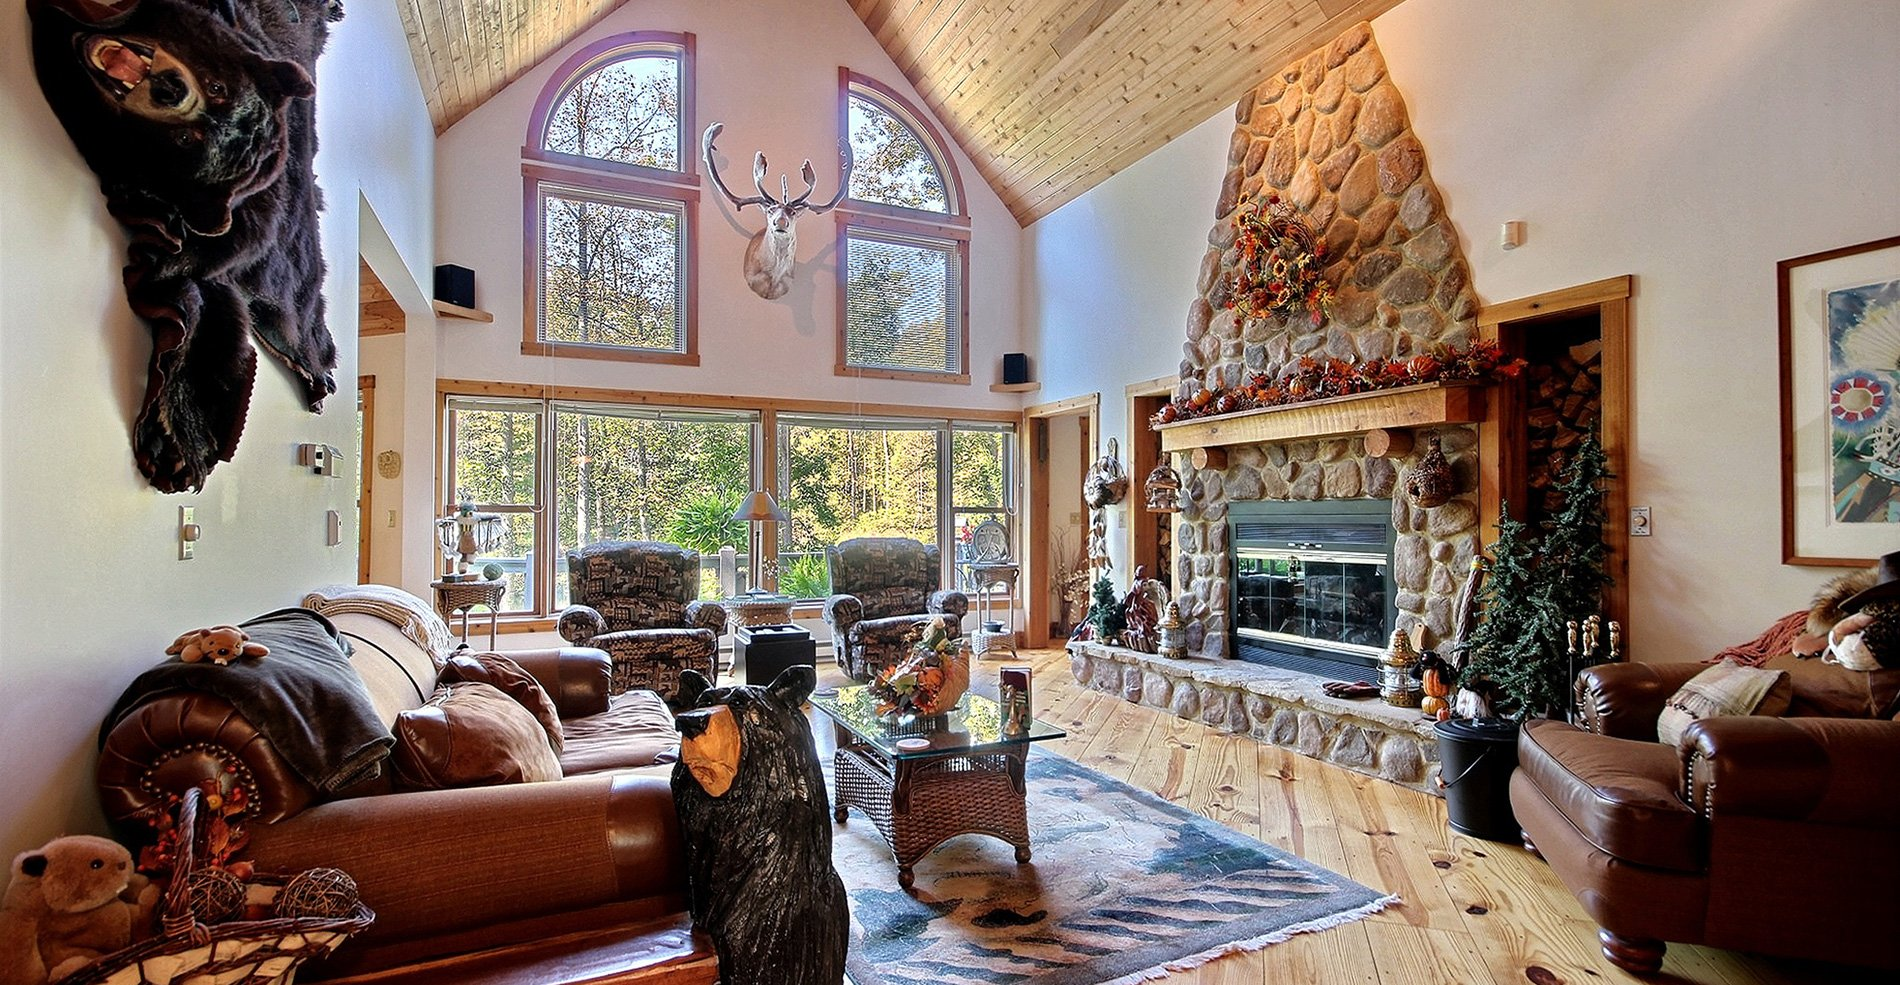 The Lake House Cabin in Hocking Hills Interior